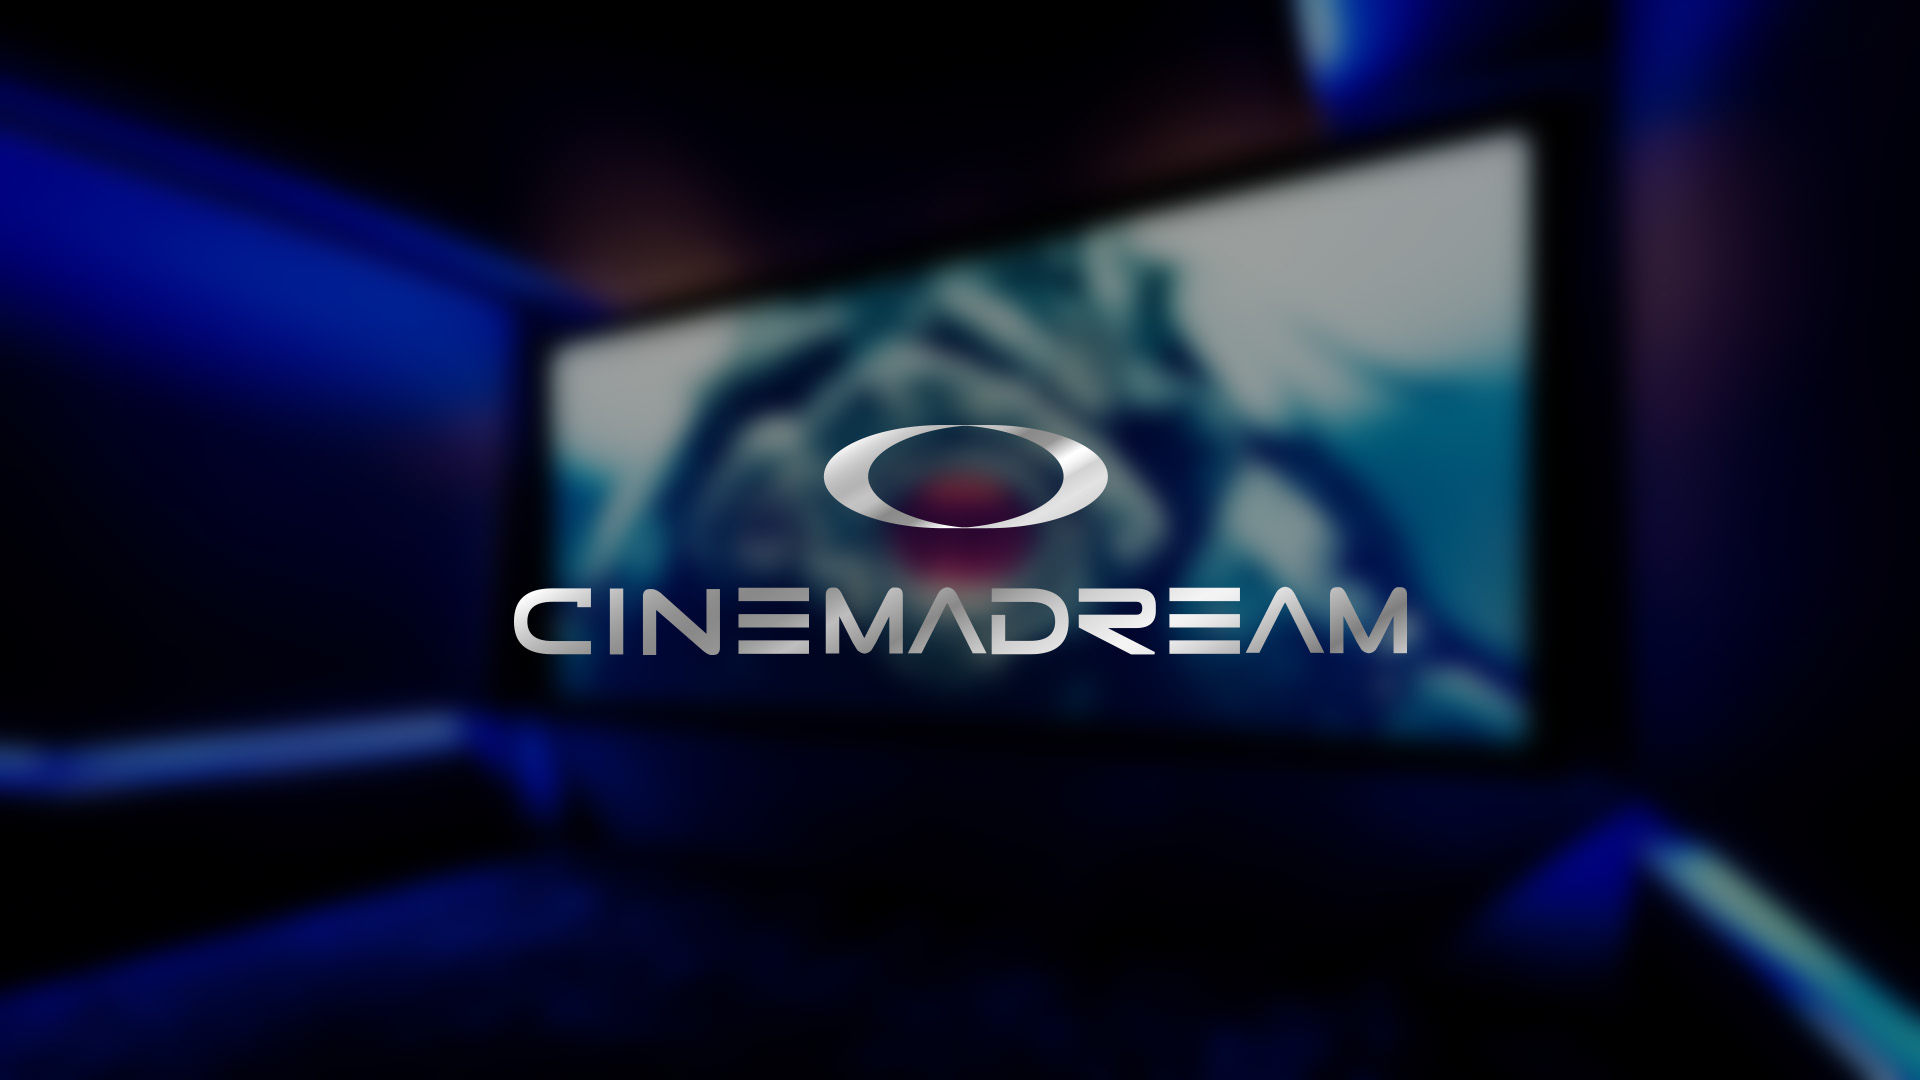 Cinemadream Thuisbioscoop Specialist